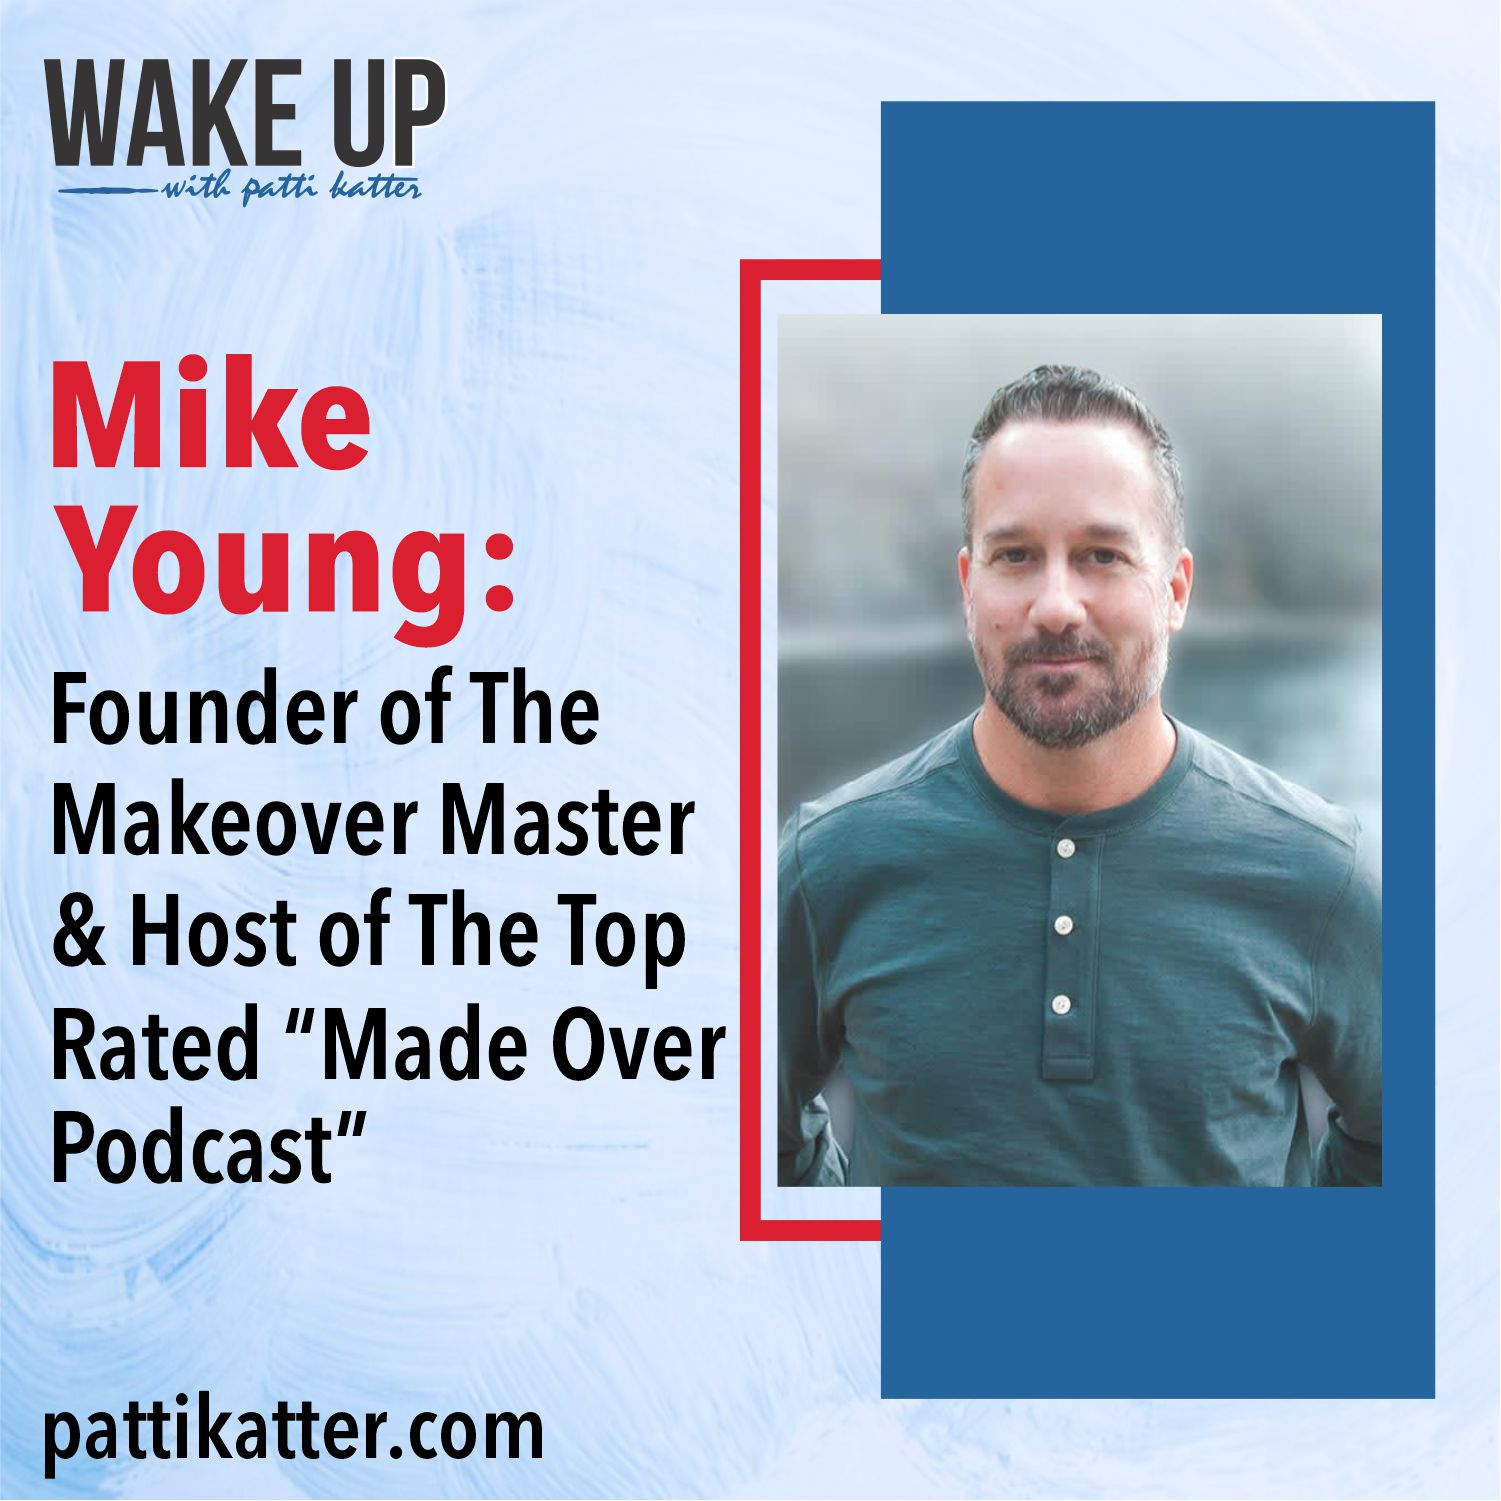 """Mike Young: Founder of The Makeover Master & Host of The Top Rated """"Made Over Podcast"""""""